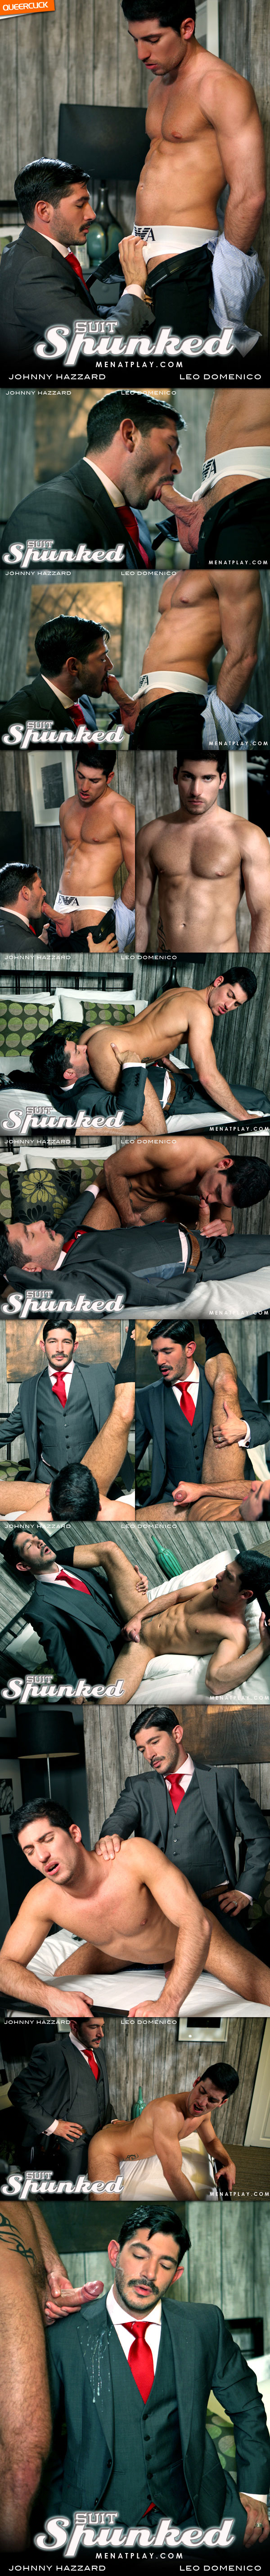 Men At Play: Suit Spunked - Johnny Hazzard and Leo Domenico